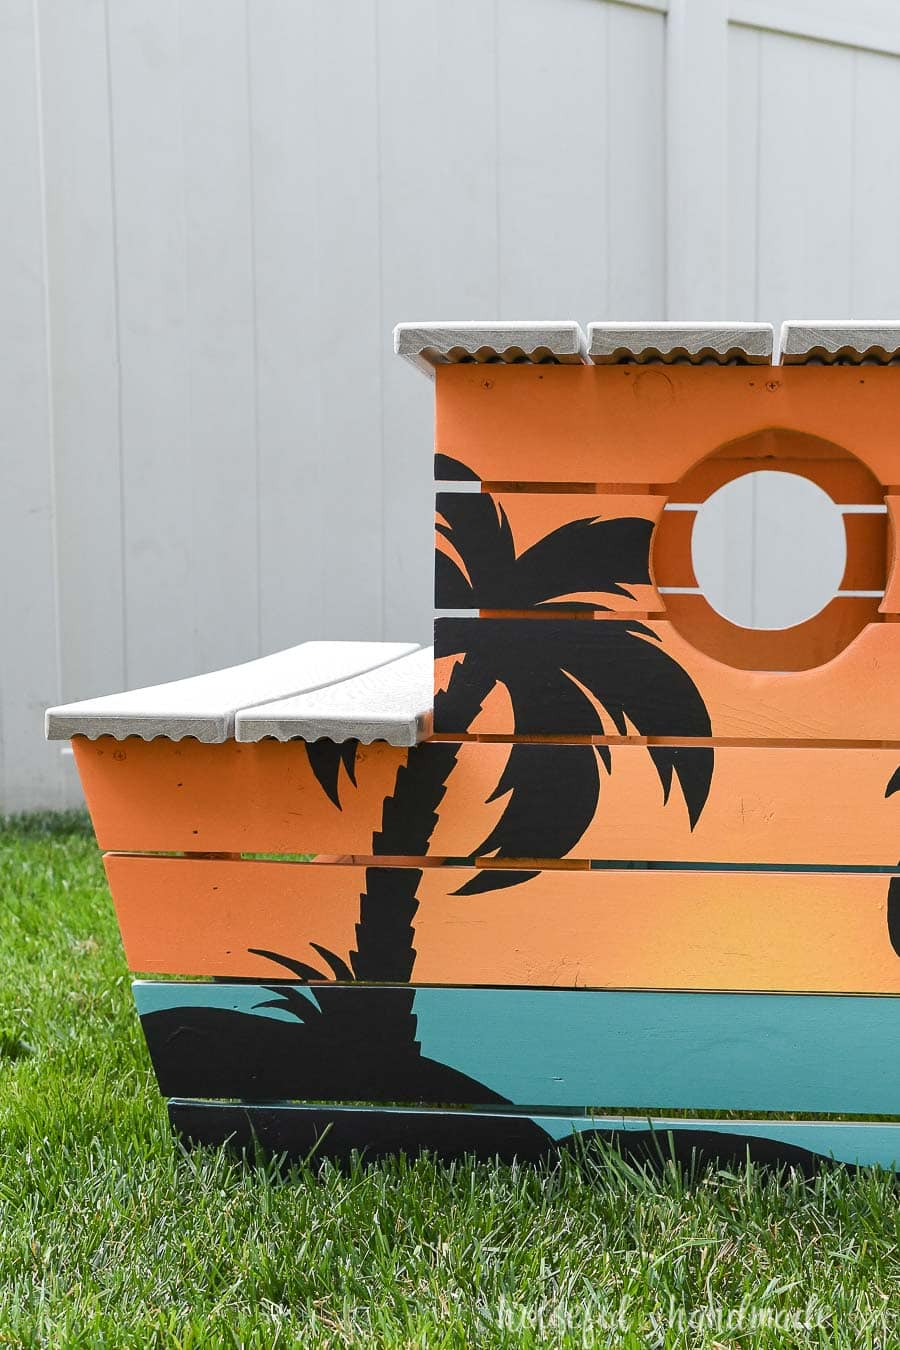 Straight on view of the tropical painted picnic table with a palm tree silhouette.